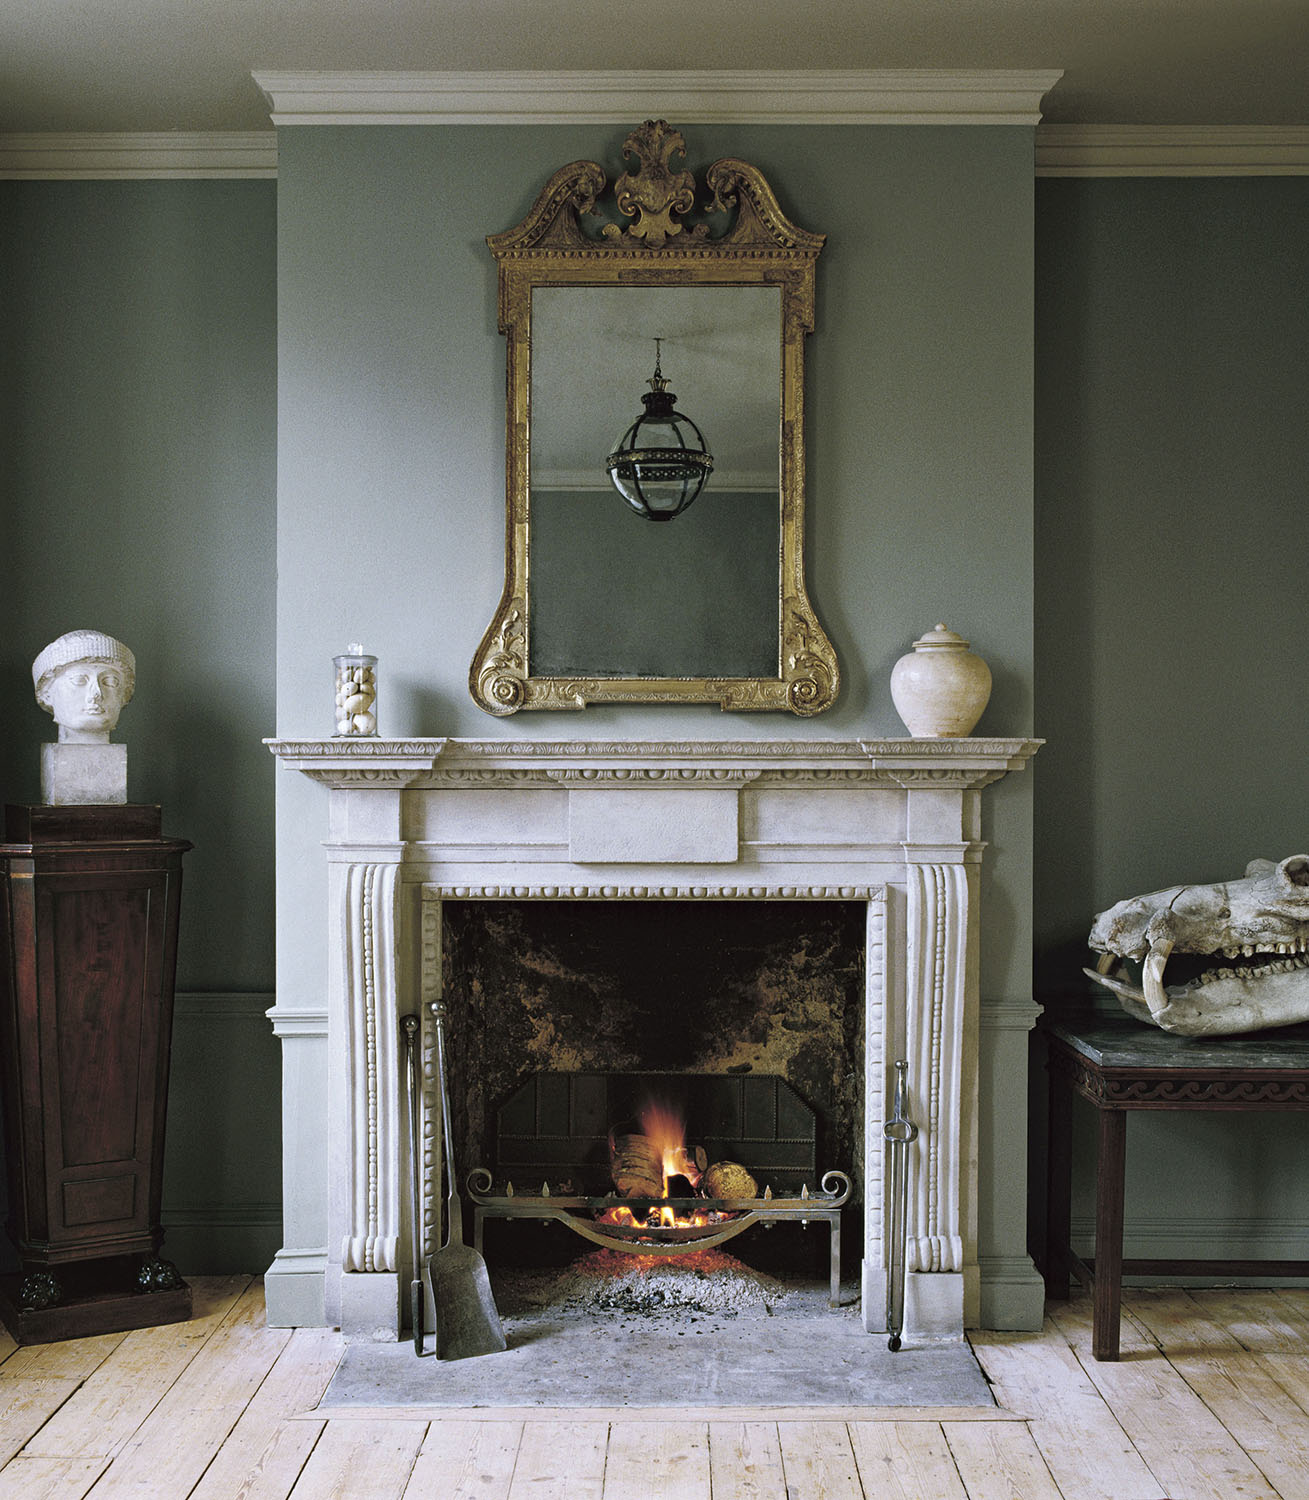 Astounding Jamb Antique Fireplaces Reproduction Lighting And Furniture Interior Design Ideas Gentotryabchikinfo